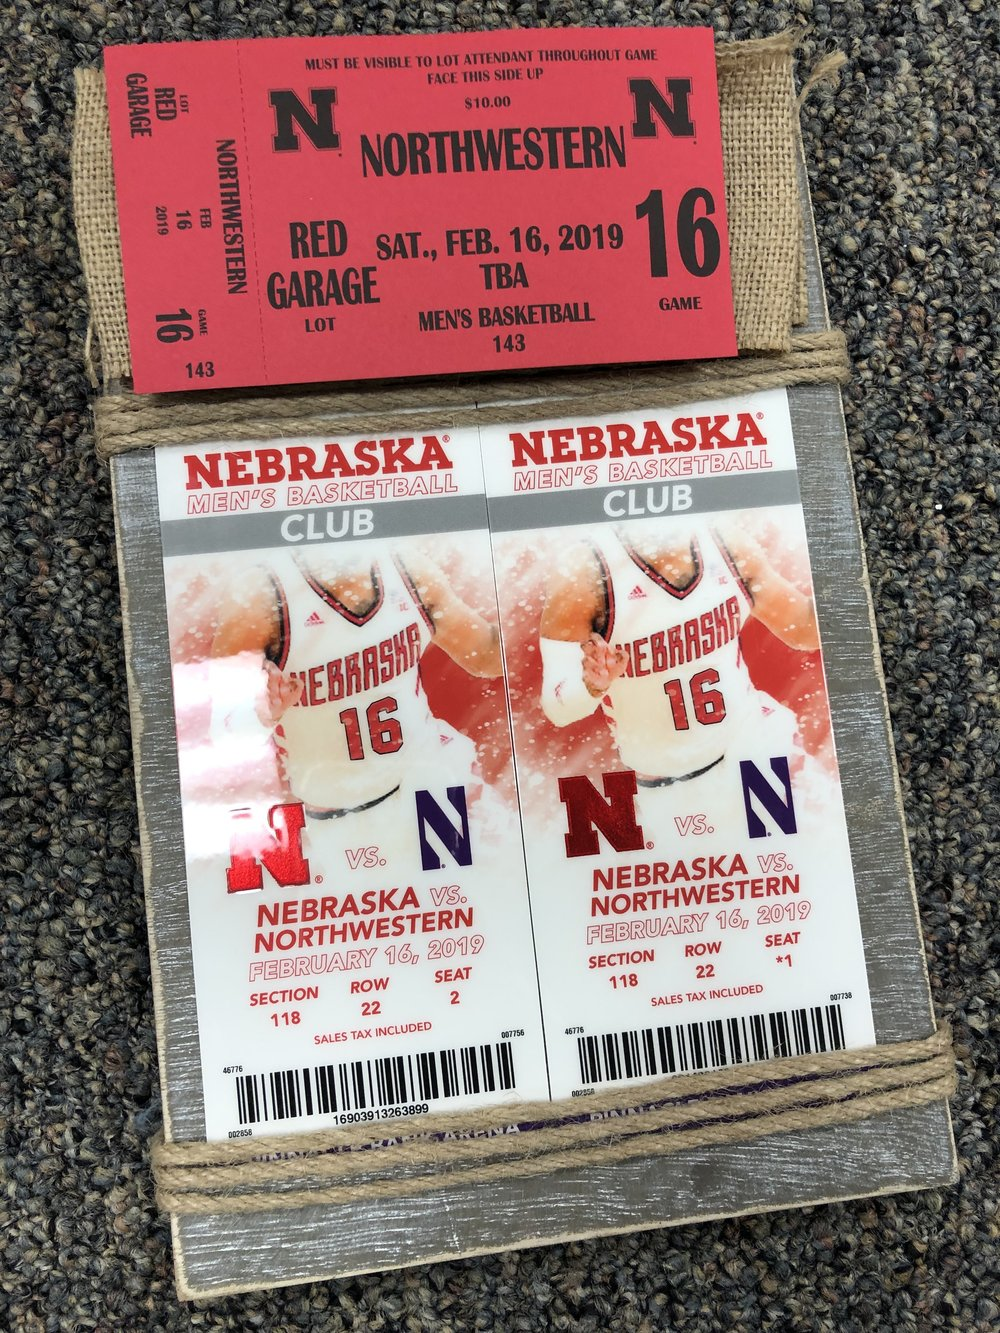 2 Club Level Tickets to Nebraska Basketball vs. Northwestern - Includes a parking pass.